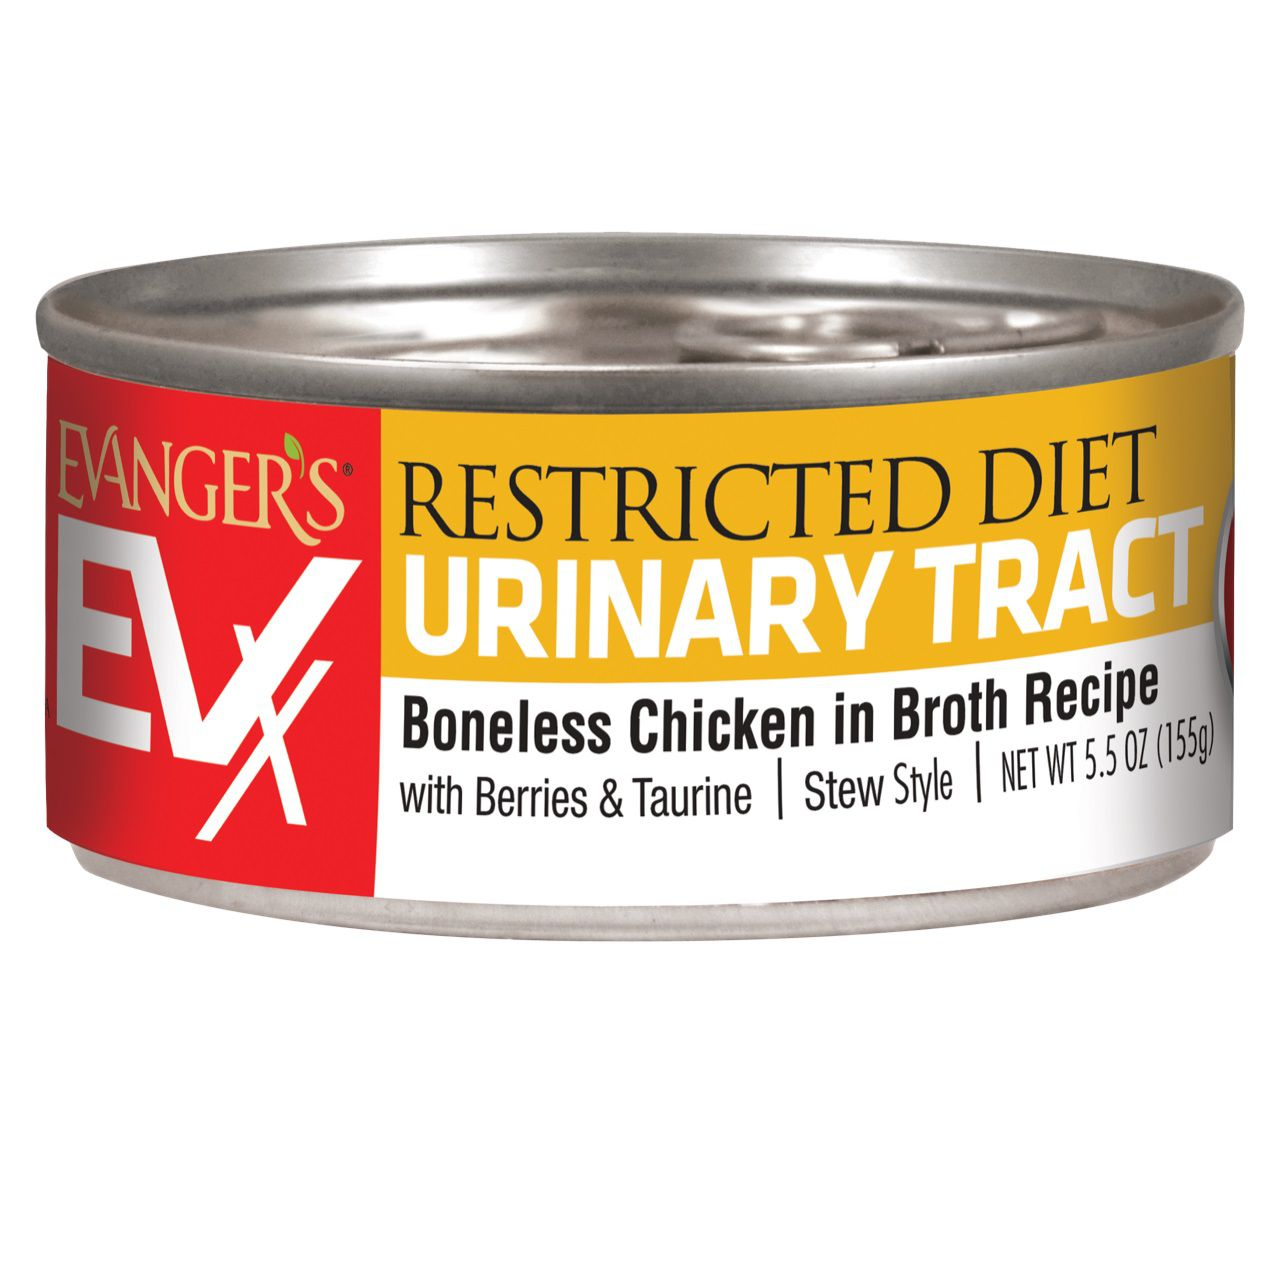 Evanger's EVx Restricted: Urinary Tract